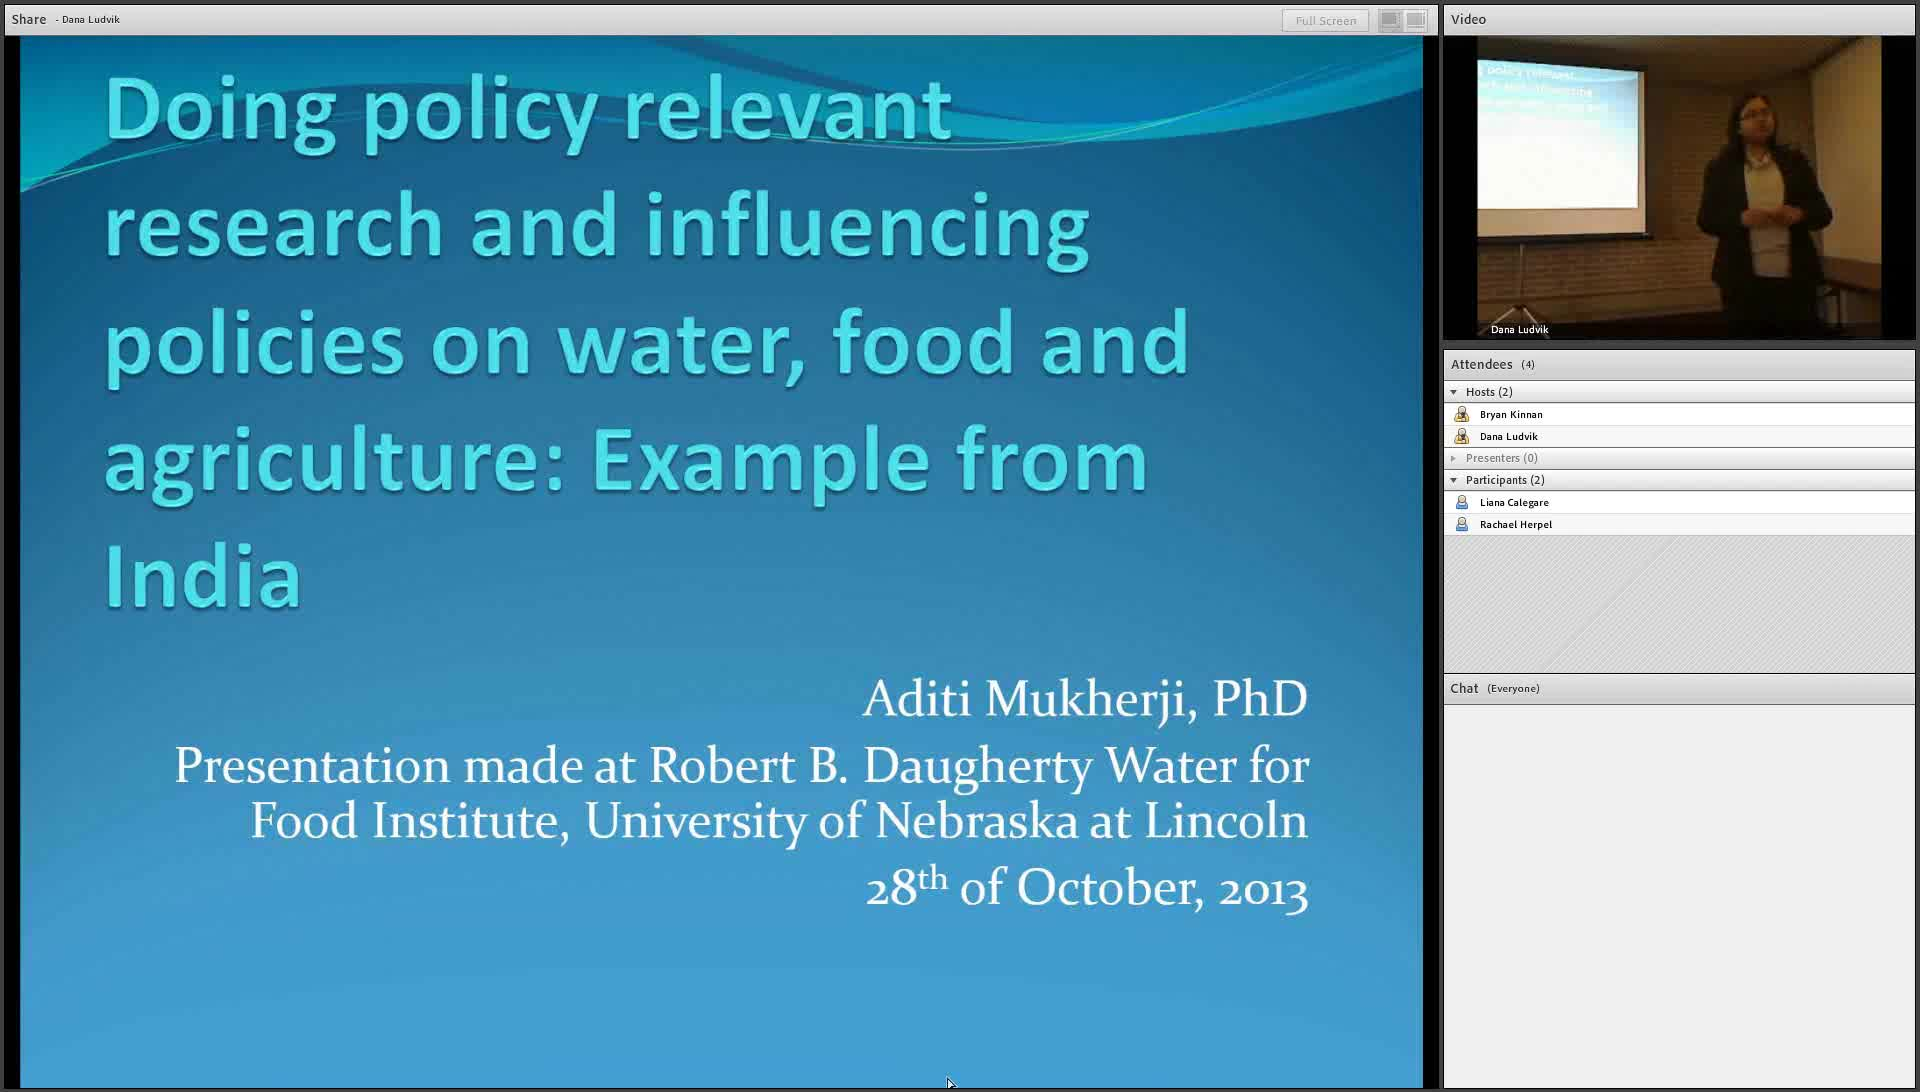 Doing Policy Relevant Research on Water, Food and Agriculture: Examples from India